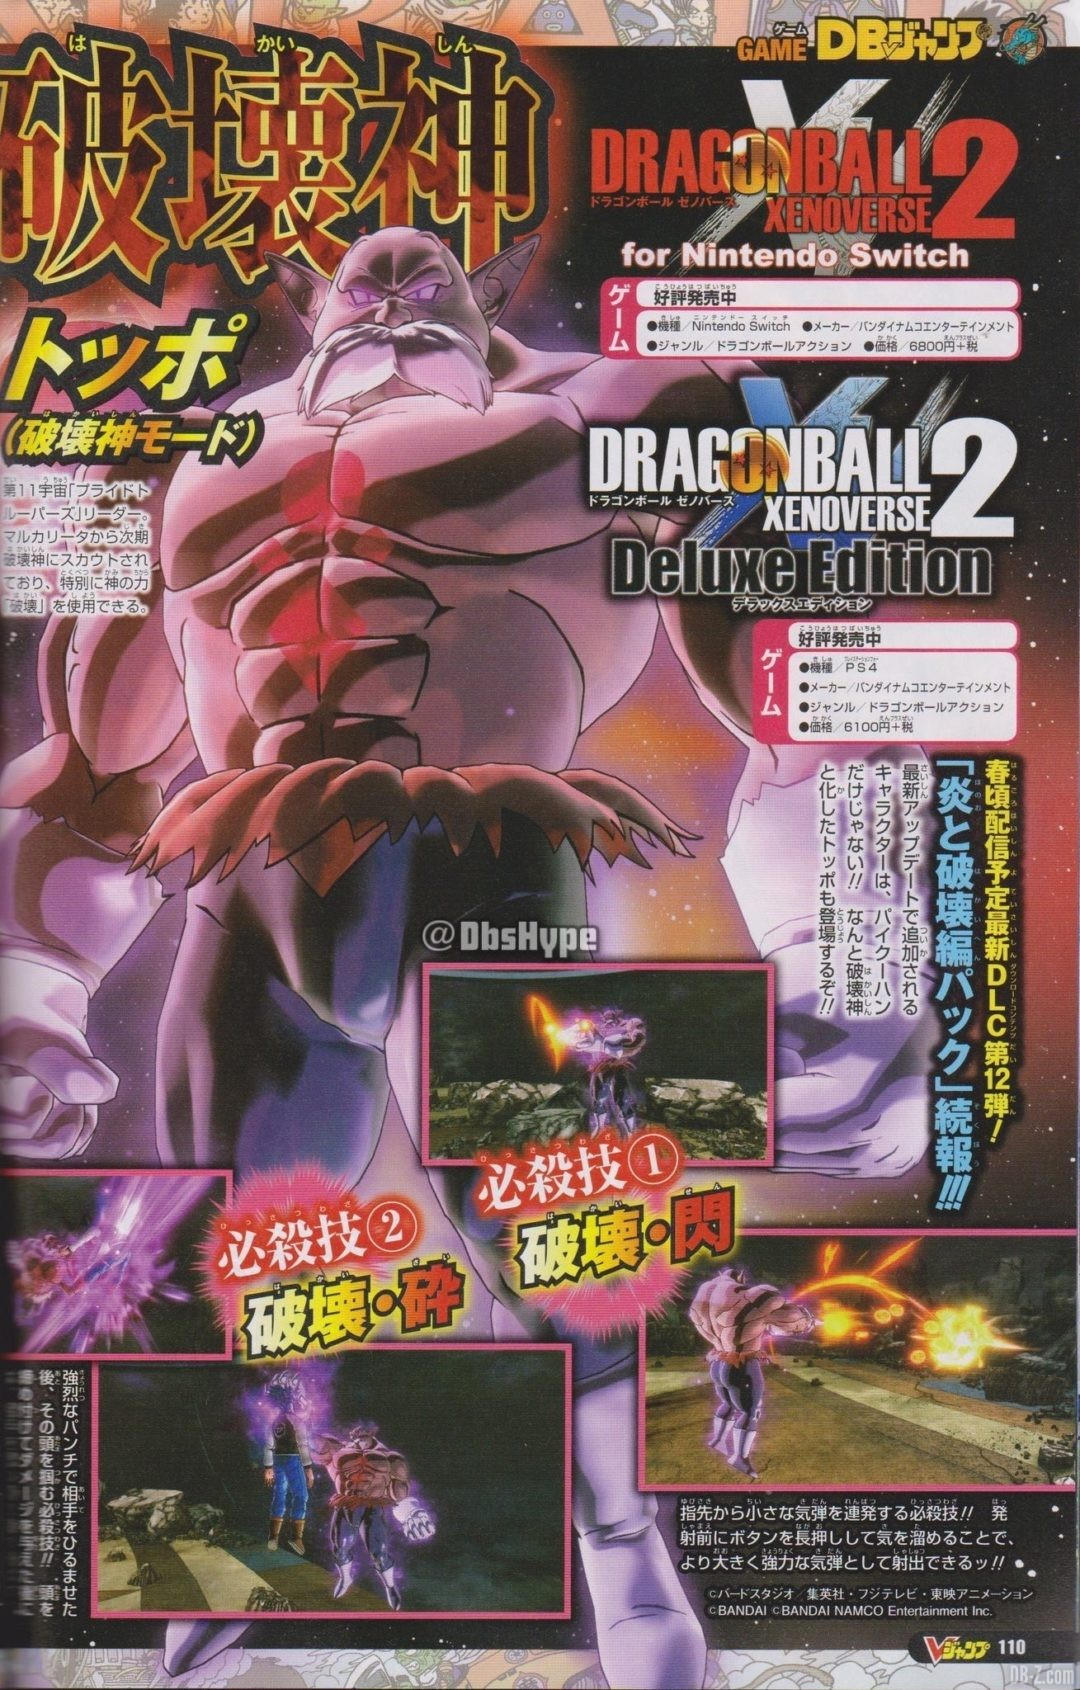 Toppo Dragon Ball Xenoverse 2 Page 1